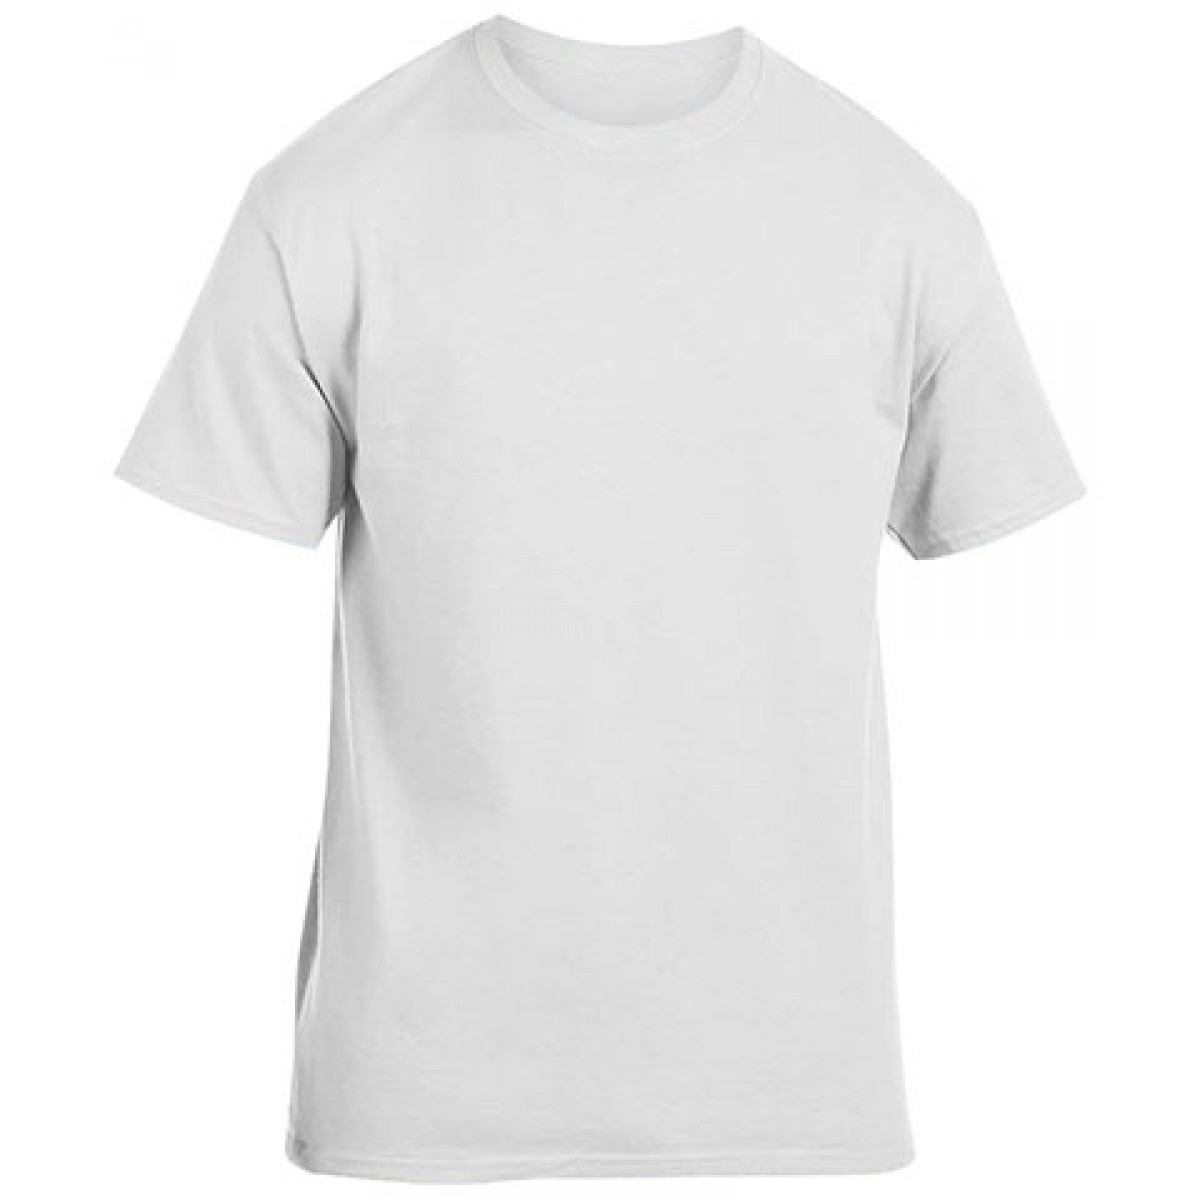 Cotton Short Sleeve T-Shirt-White-XS